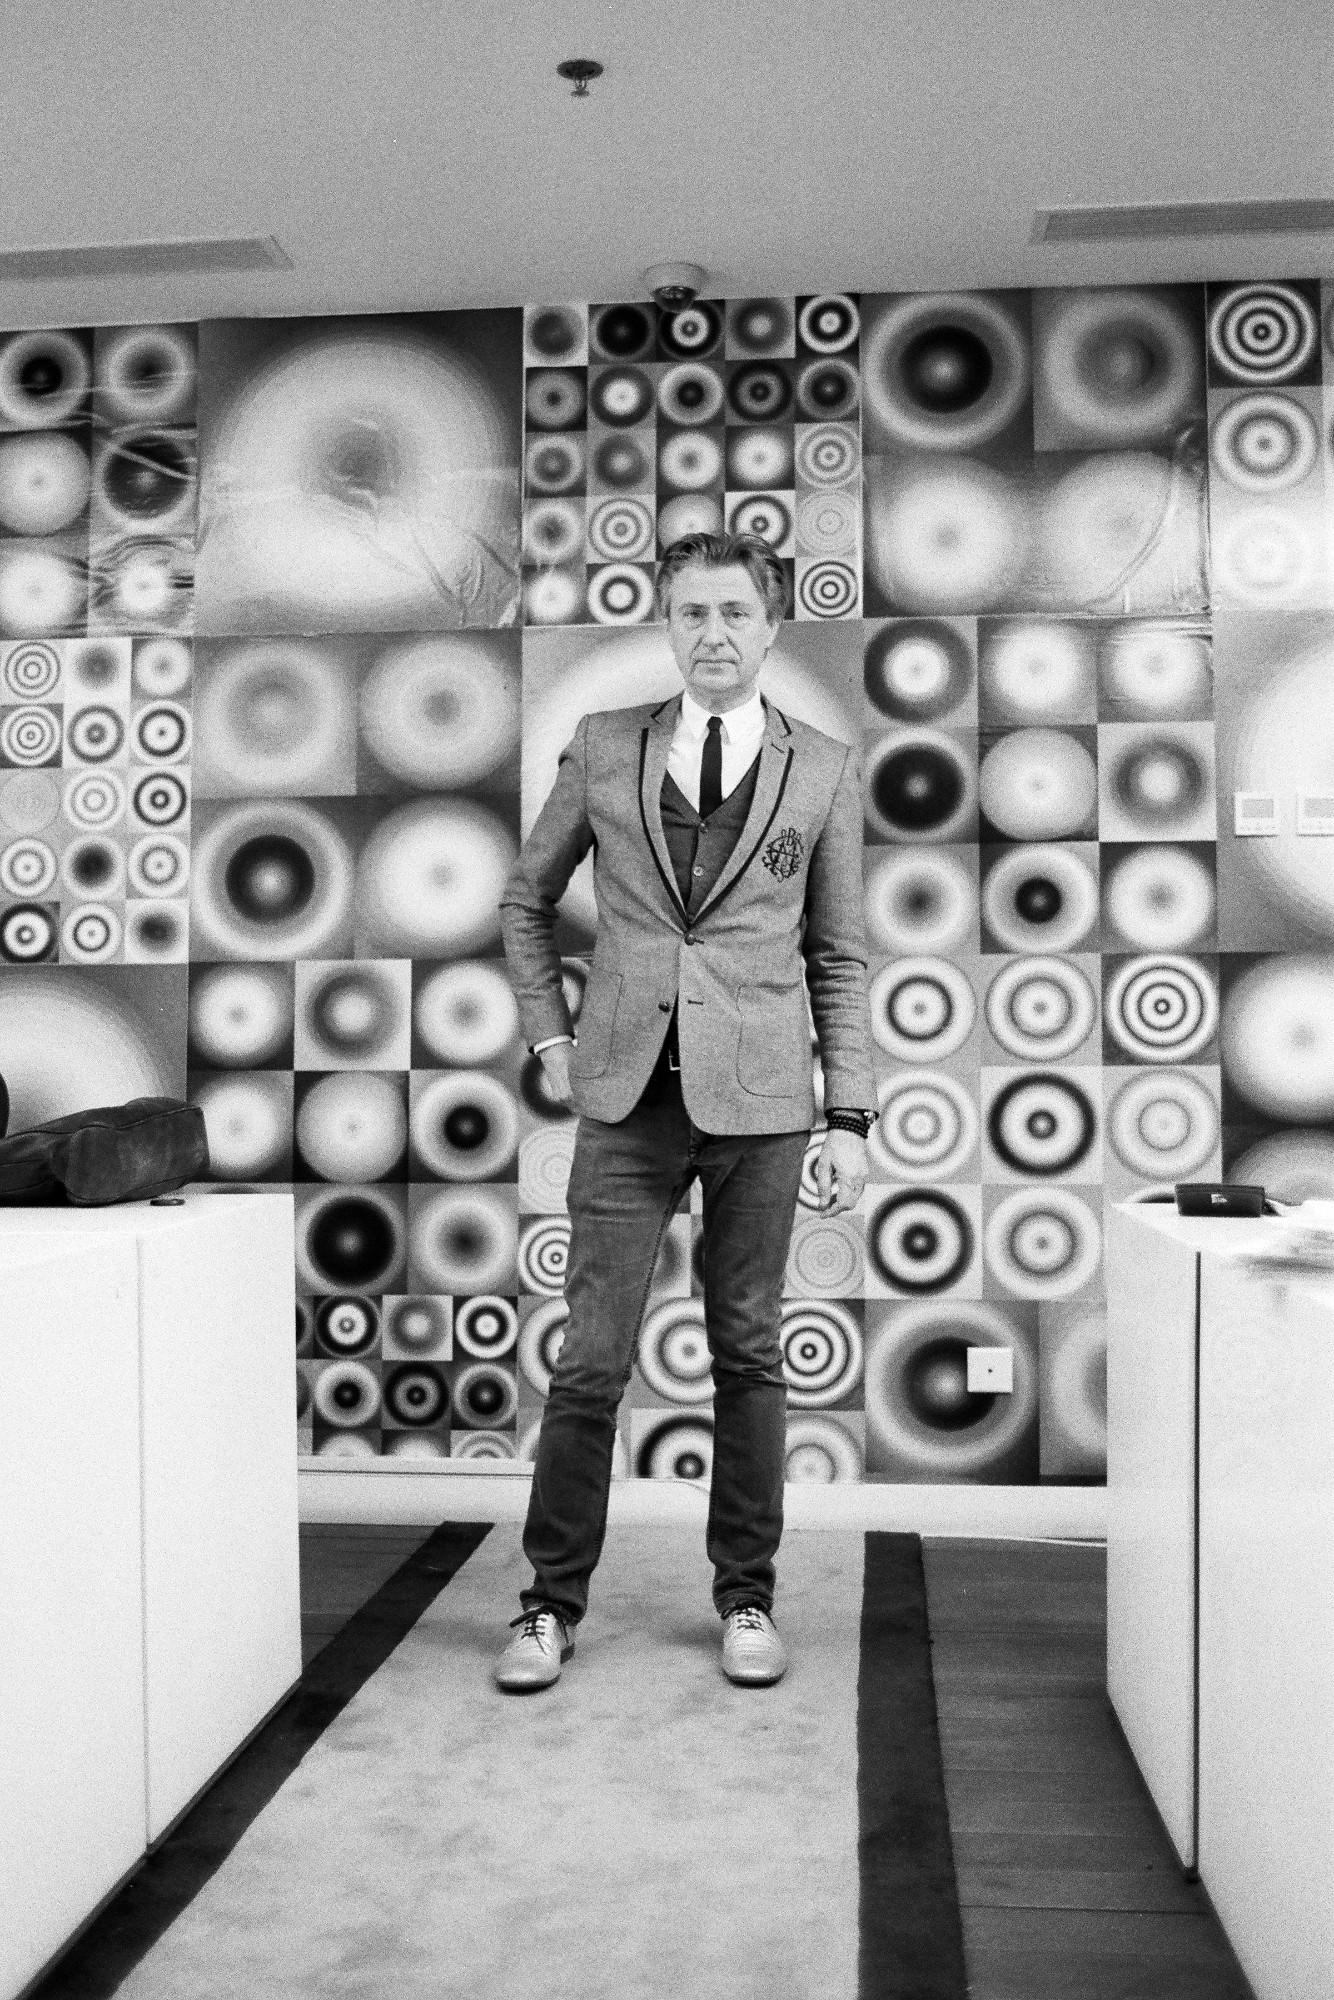 Walead Beshty photograph portrait of a man in a fitted suit in front of wall of art